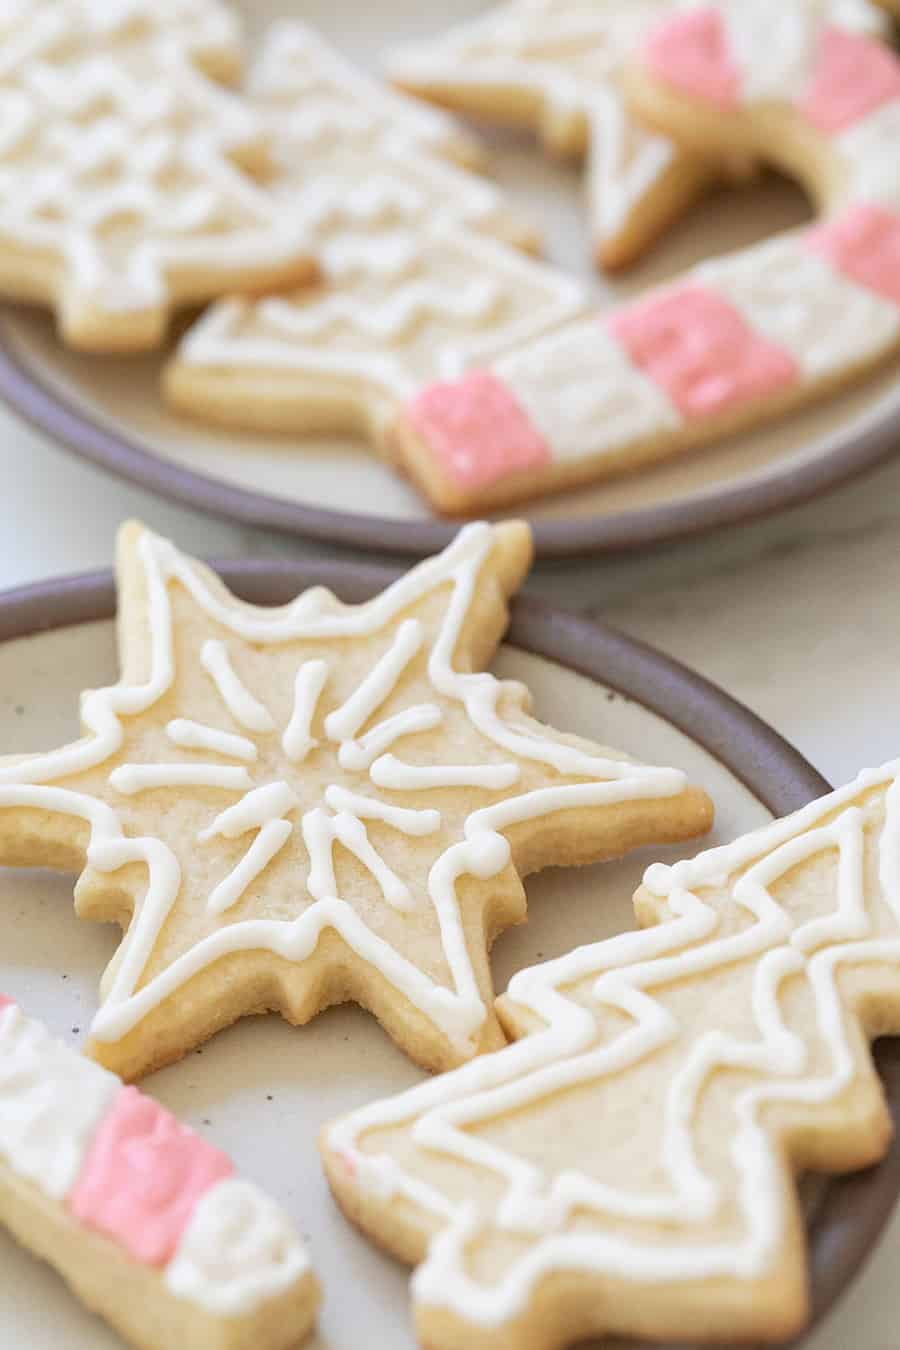 Sugar-free cookie with icing.